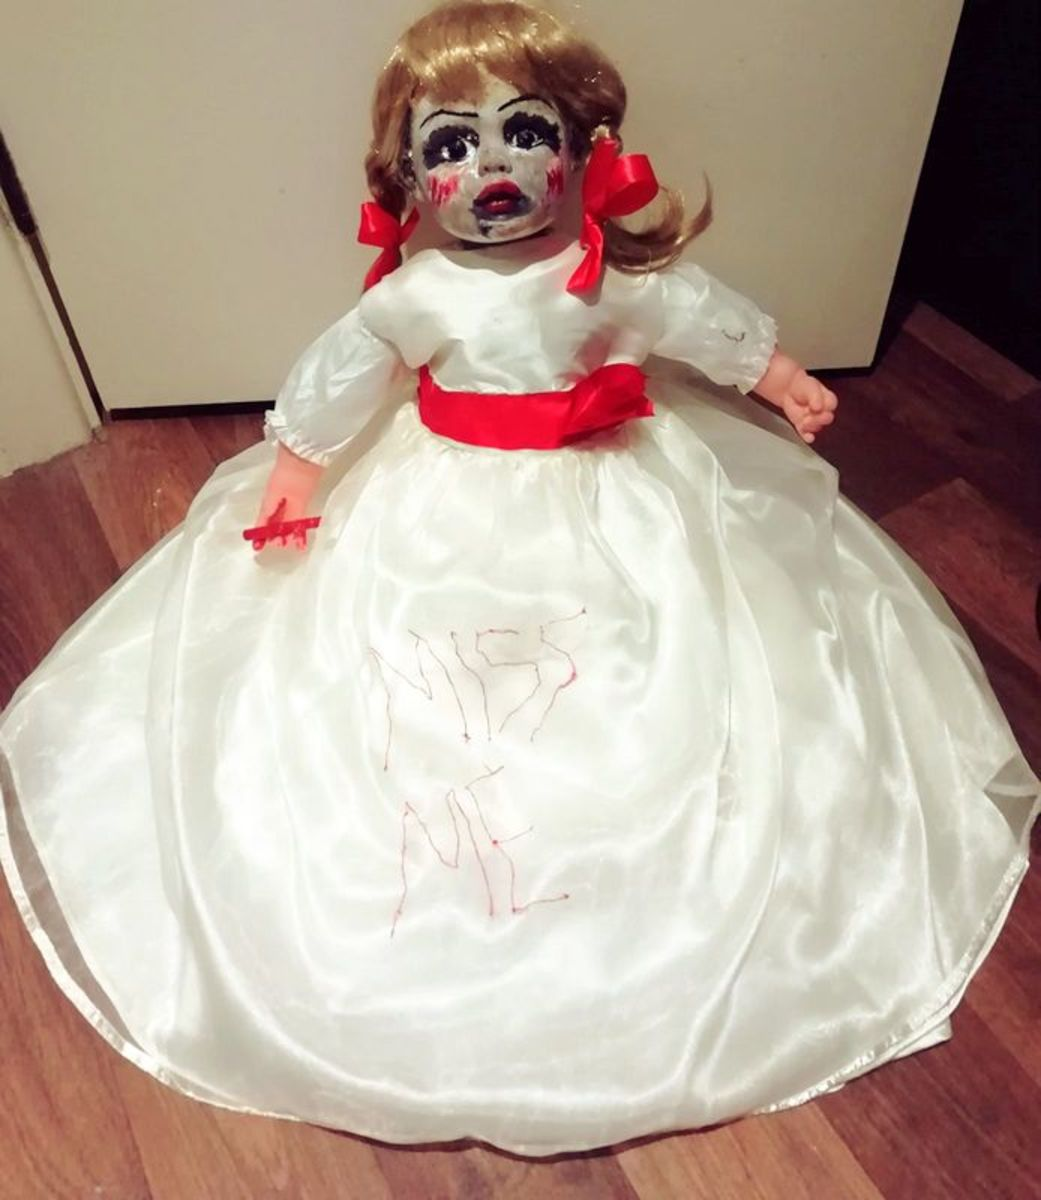 This is my completed evil Annabelle doll decoration.